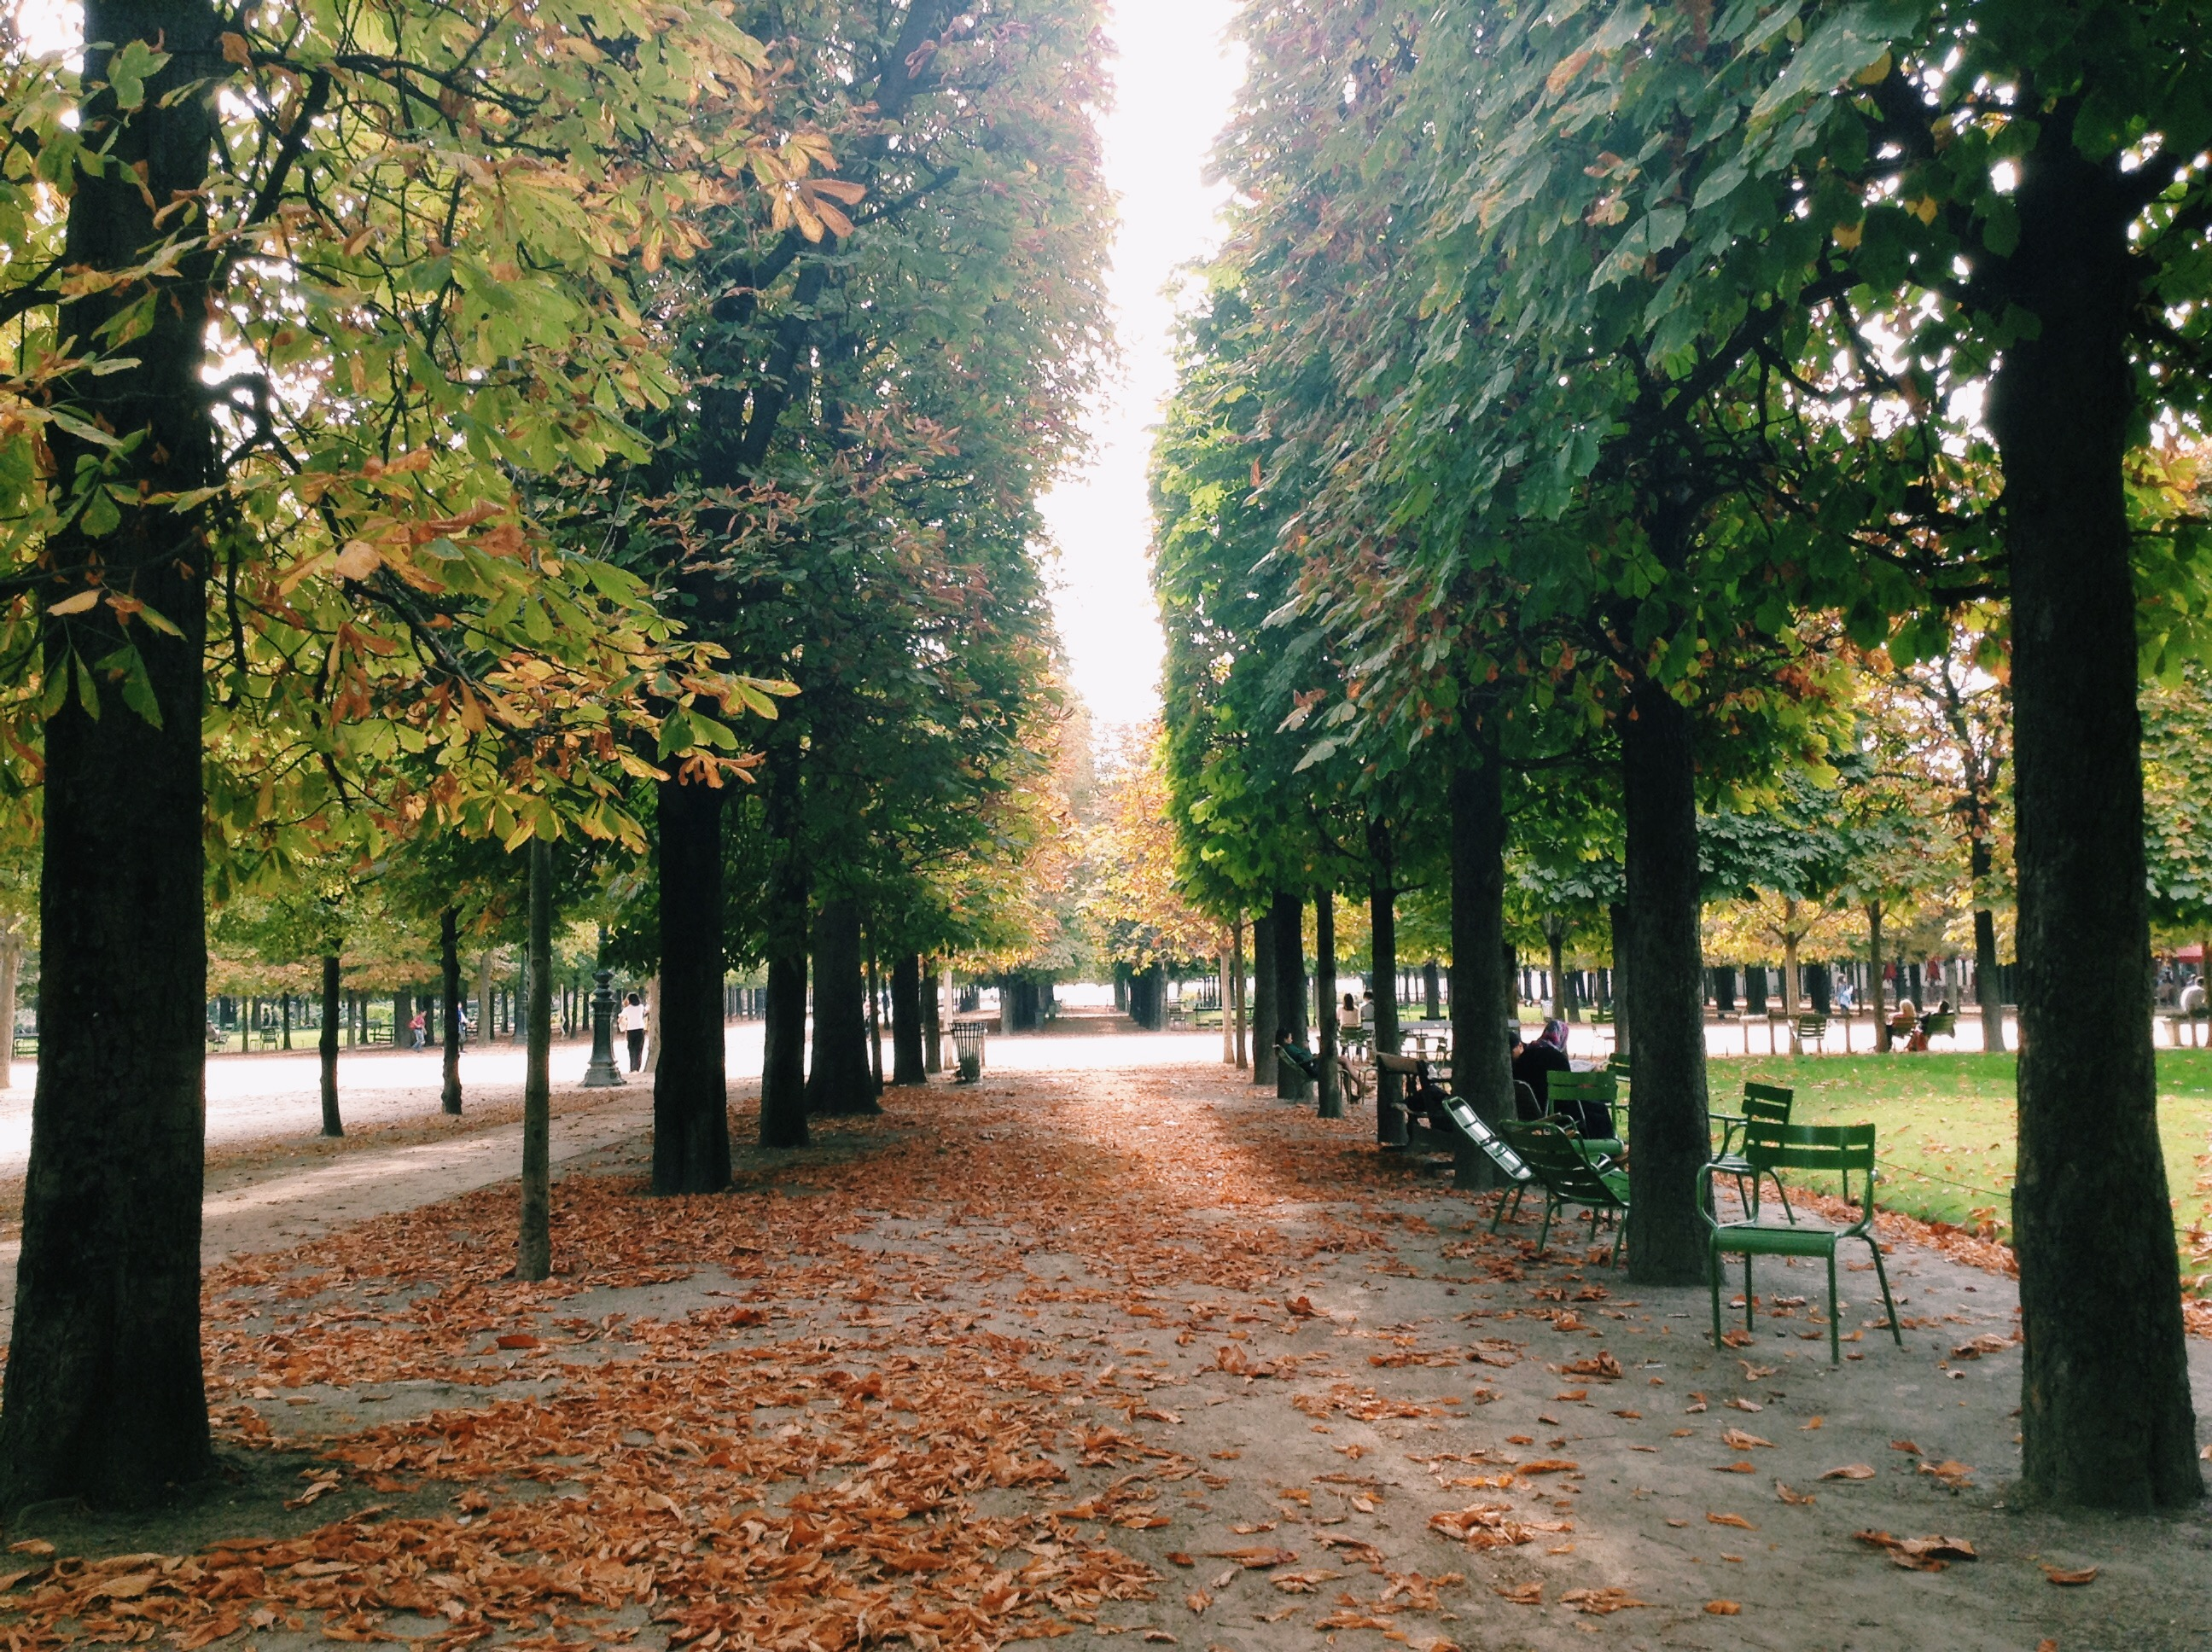 In the Tuileries garden